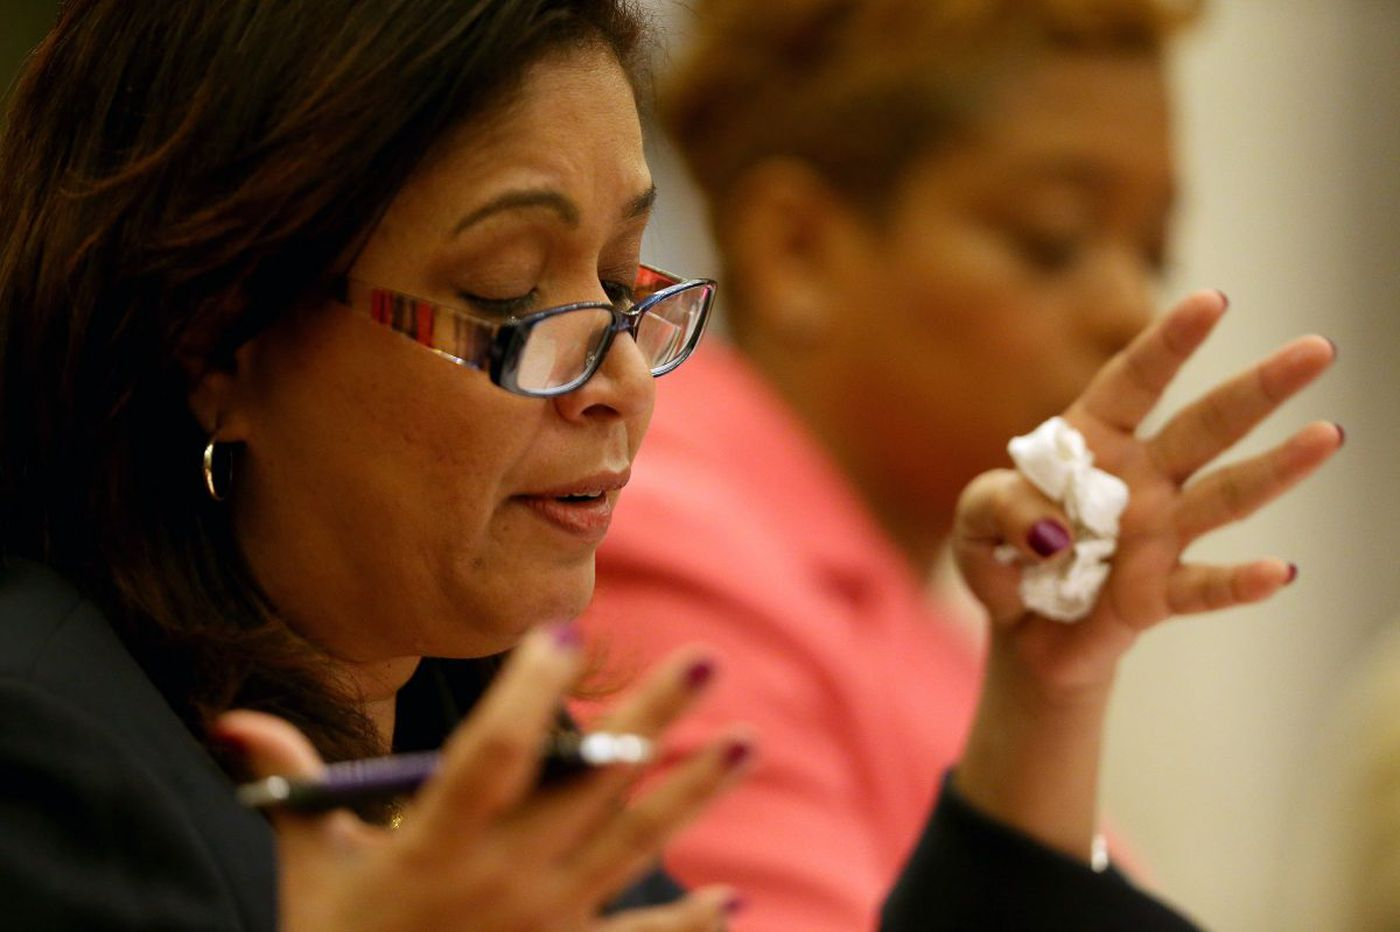 Council hearing on opioid epidemic airs complex concerns, basic questions amid a spiraling crisis